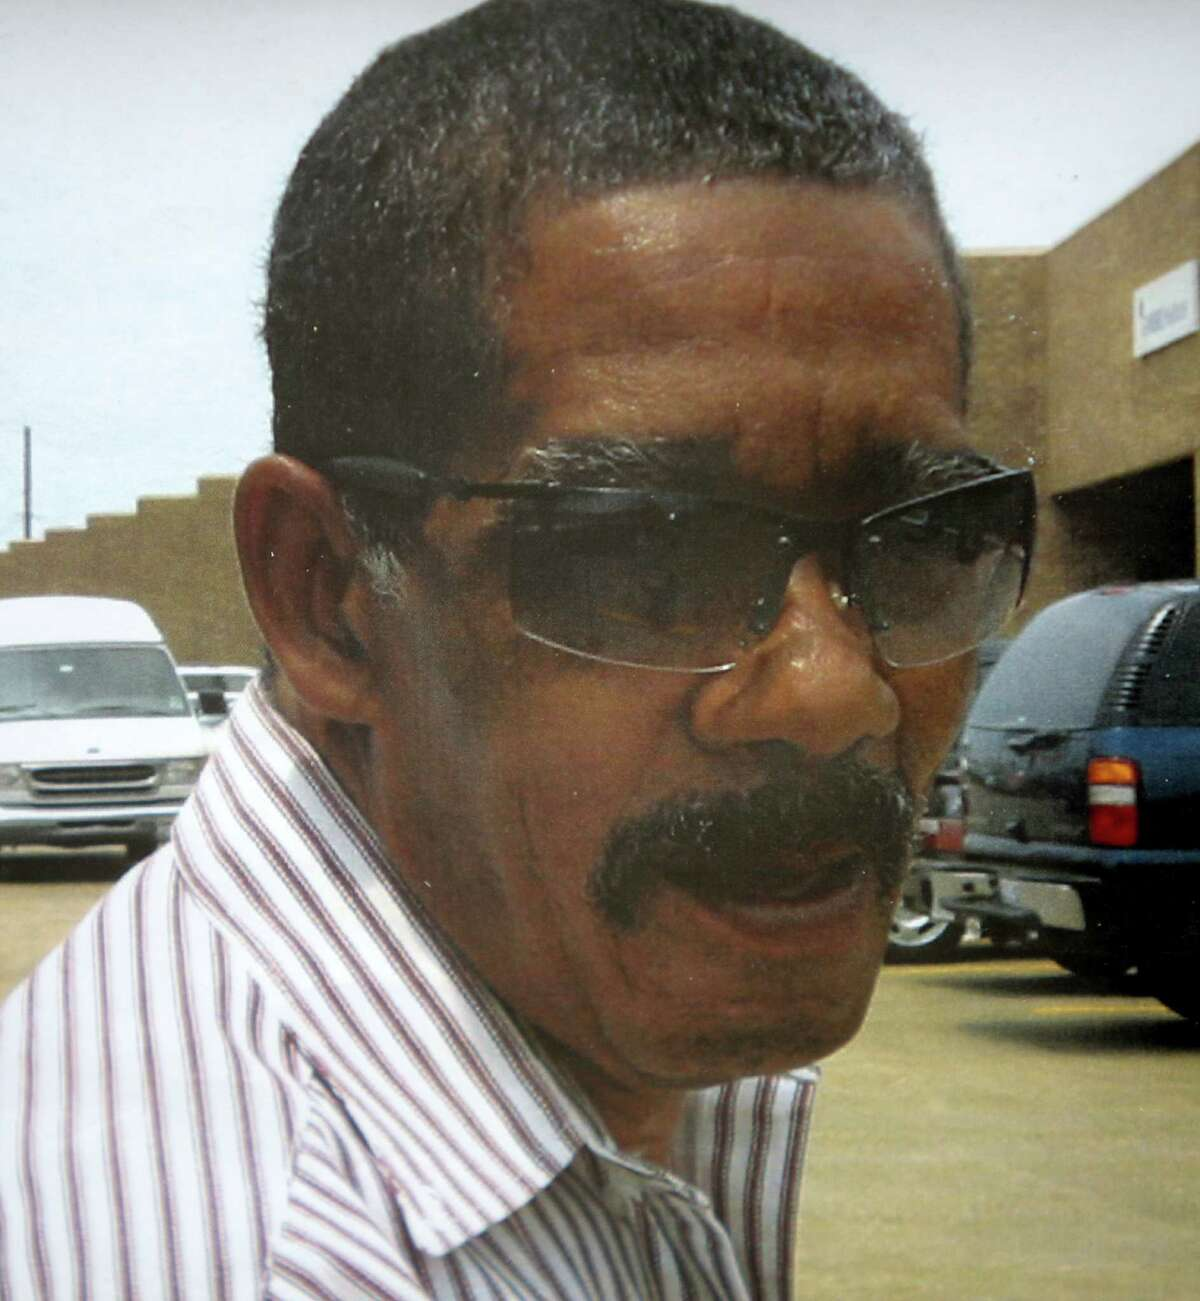 Inmate Norman Ford Hicks was slugged in the face and hit his head on cement.